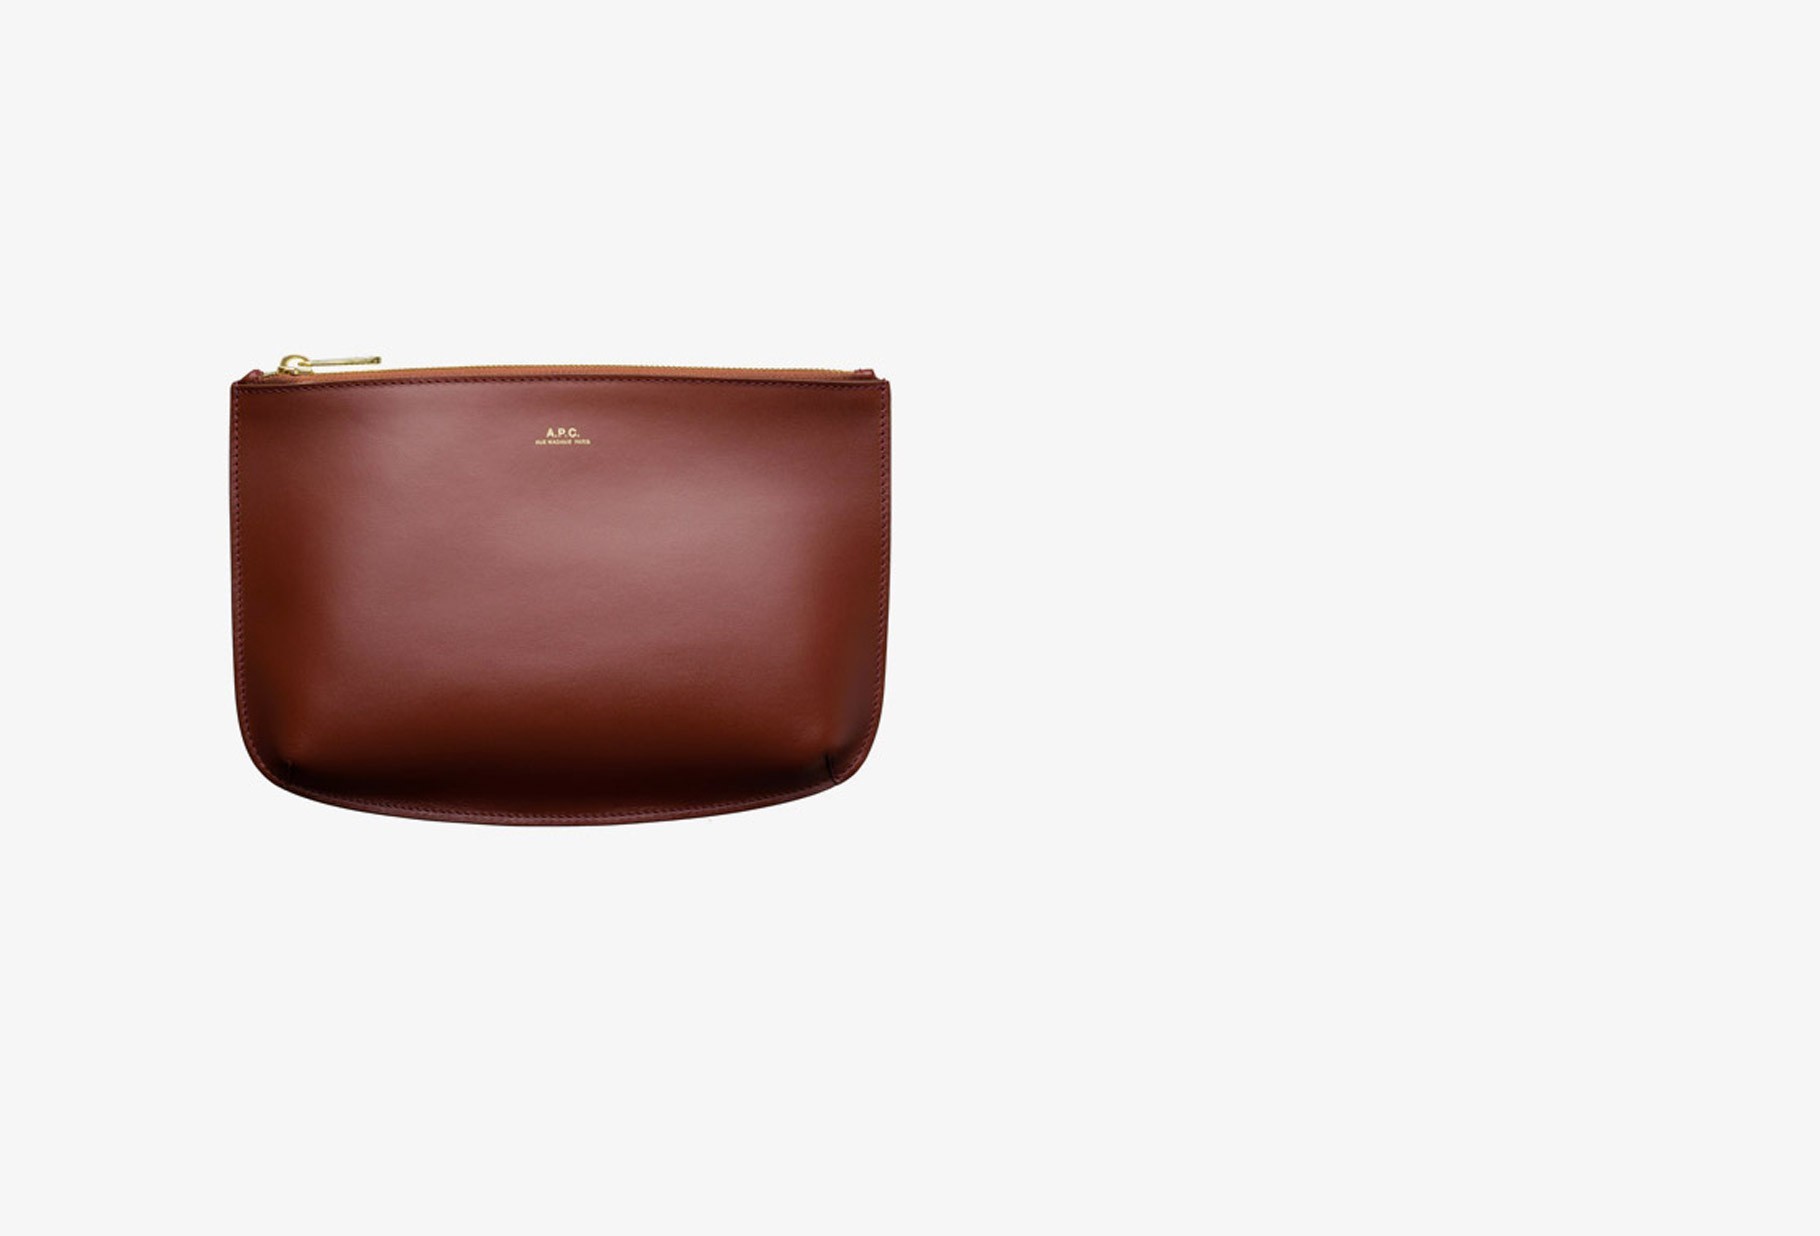 A.P.C. FOR WOMAN / Pochette sarah Terracotta